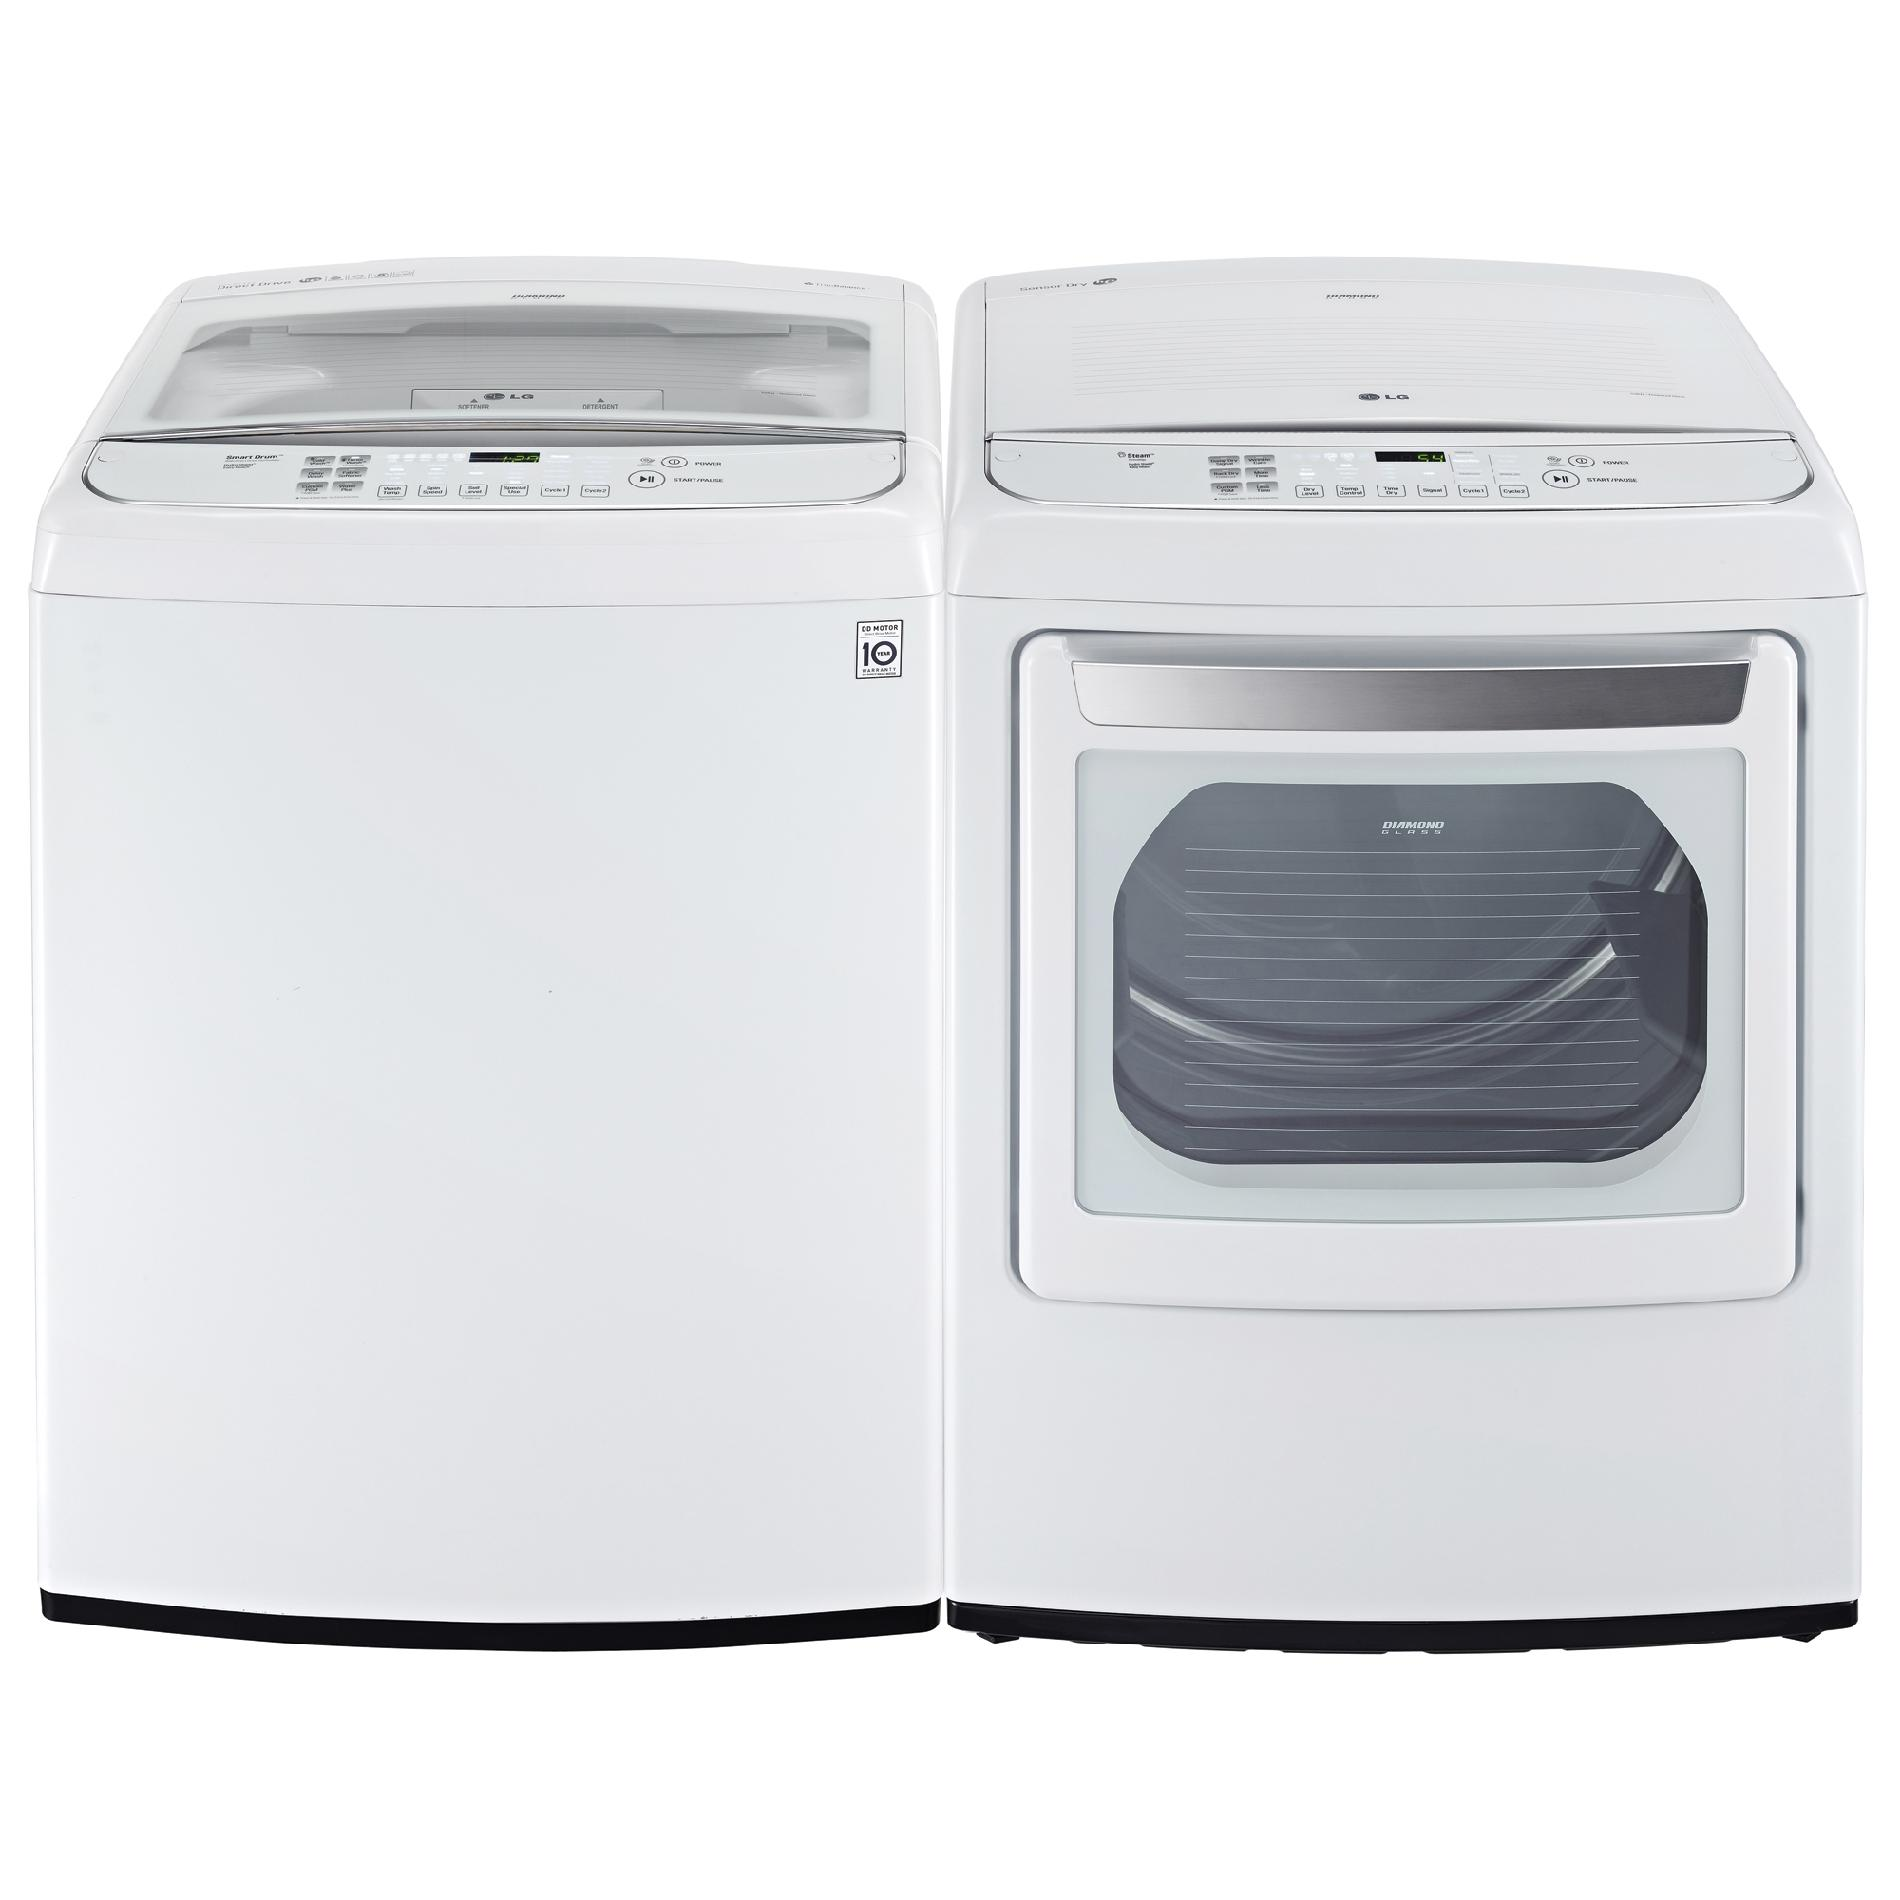 LG WT1701CW 4.9 cu. ft. High-Efficiency Top-Load Washer w/ TurboWash™